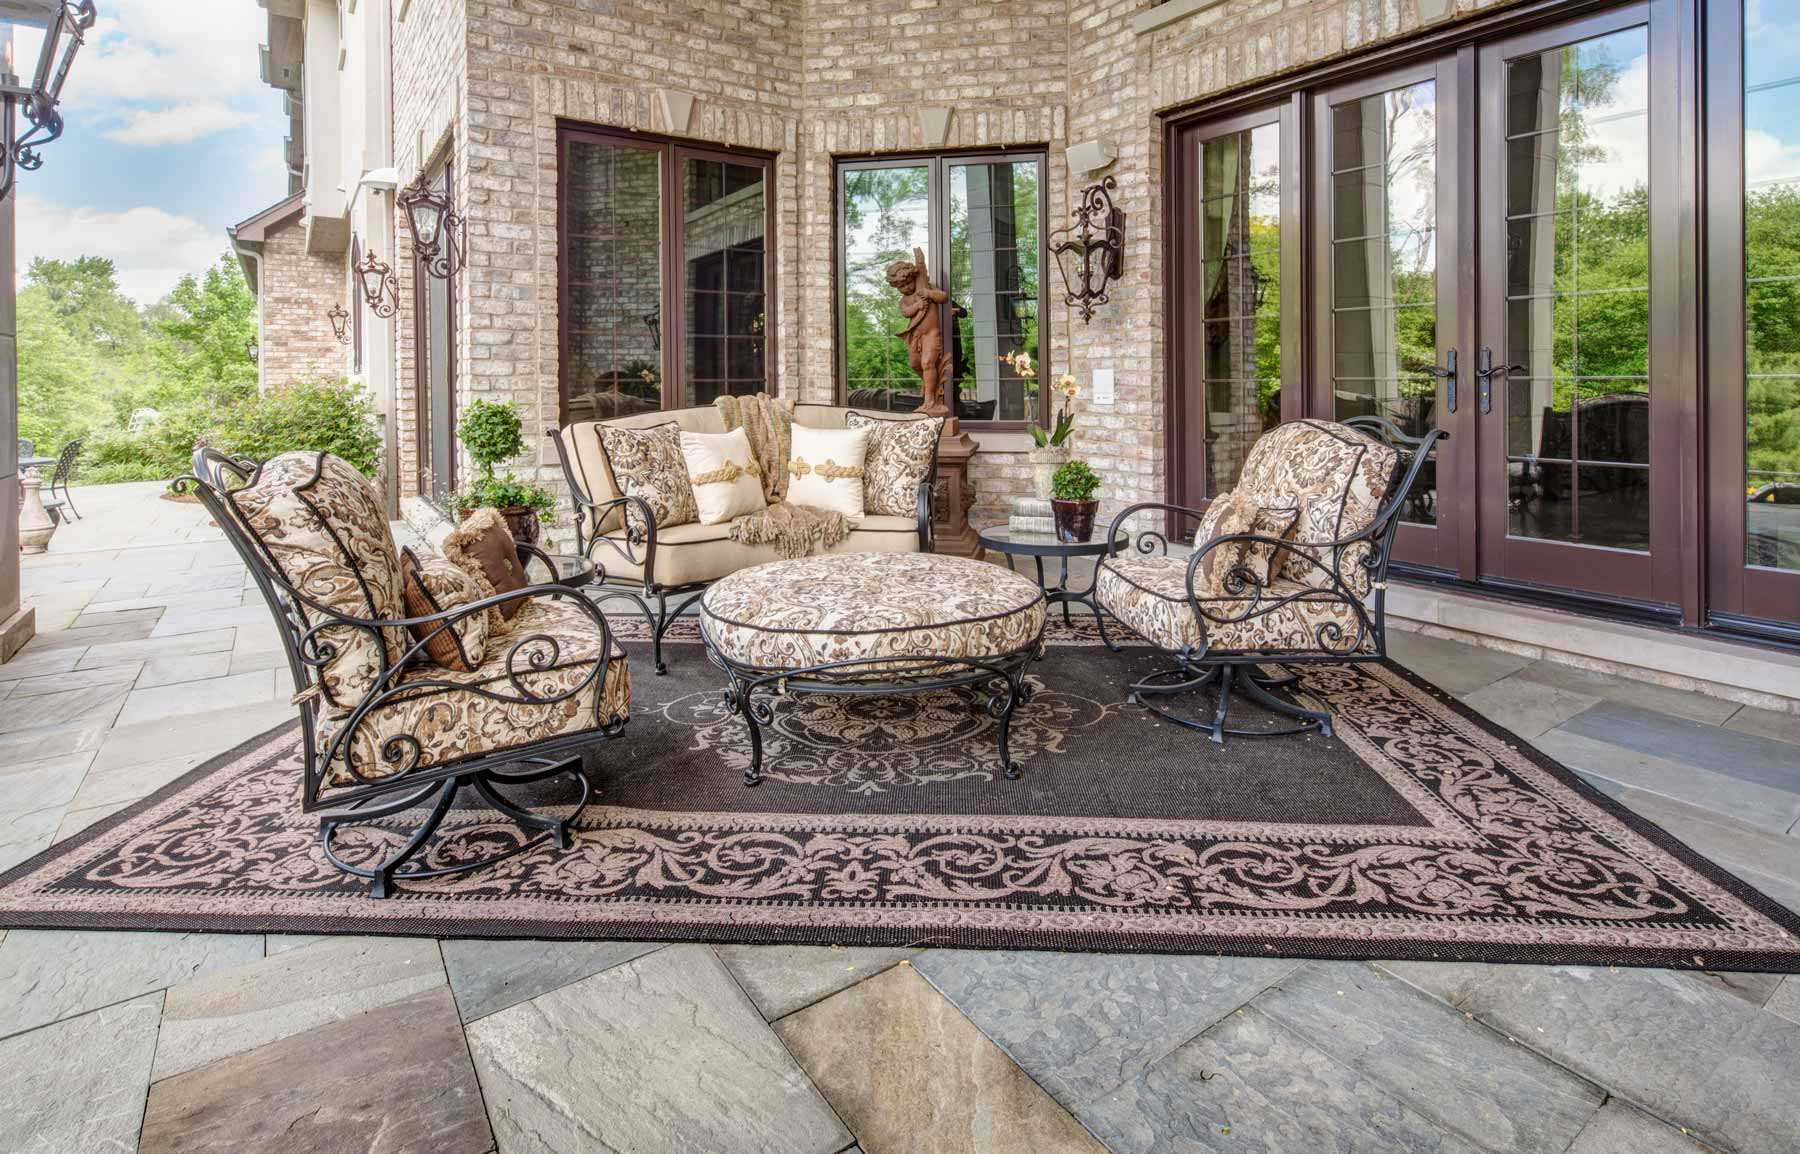 Luxury outdoor patio furniture and rug for Designer outdoor furniture